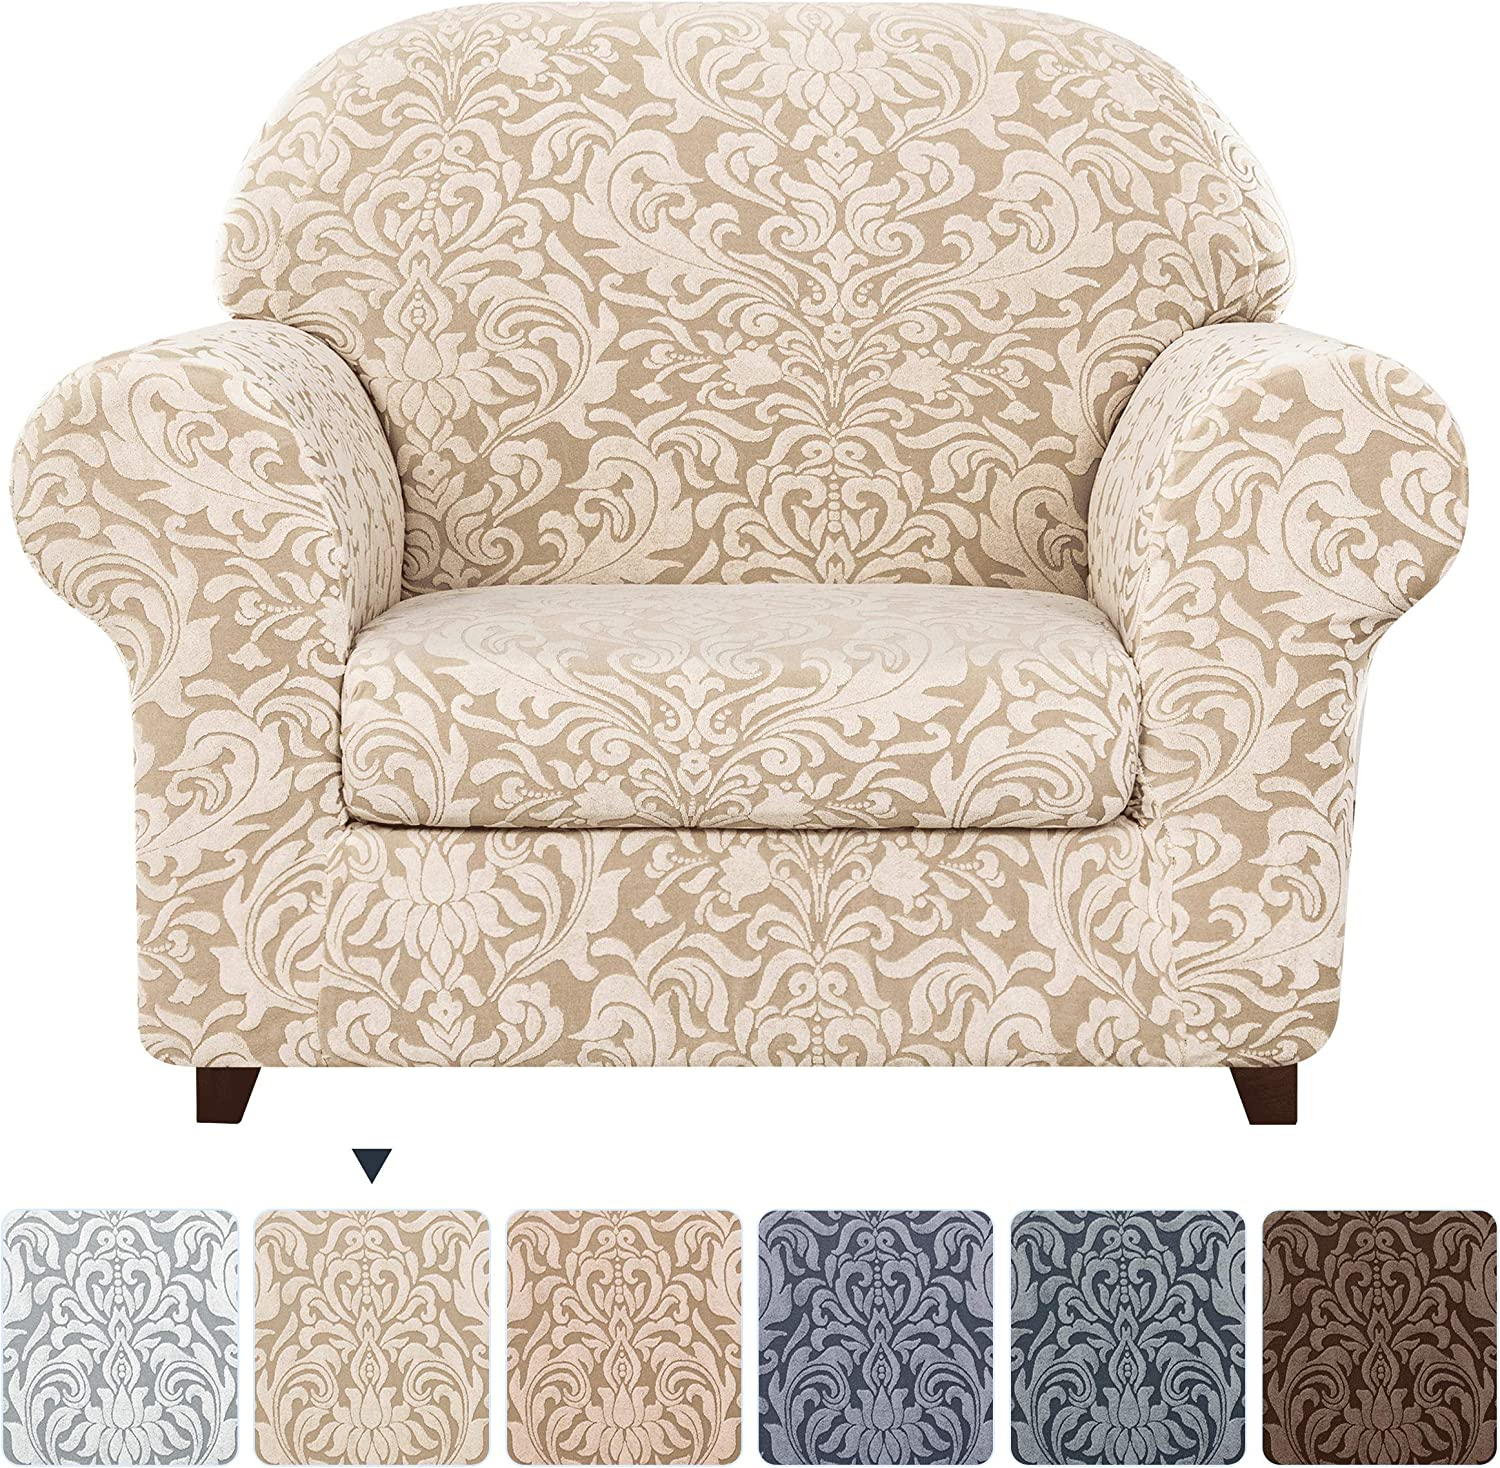 subrtex 2-Piece Slipcovers Stretch Knit Couch Sofa Stripes Pattern with Cushion Covers for Loveseat Washable Furniture Protector Small,Beige Brown